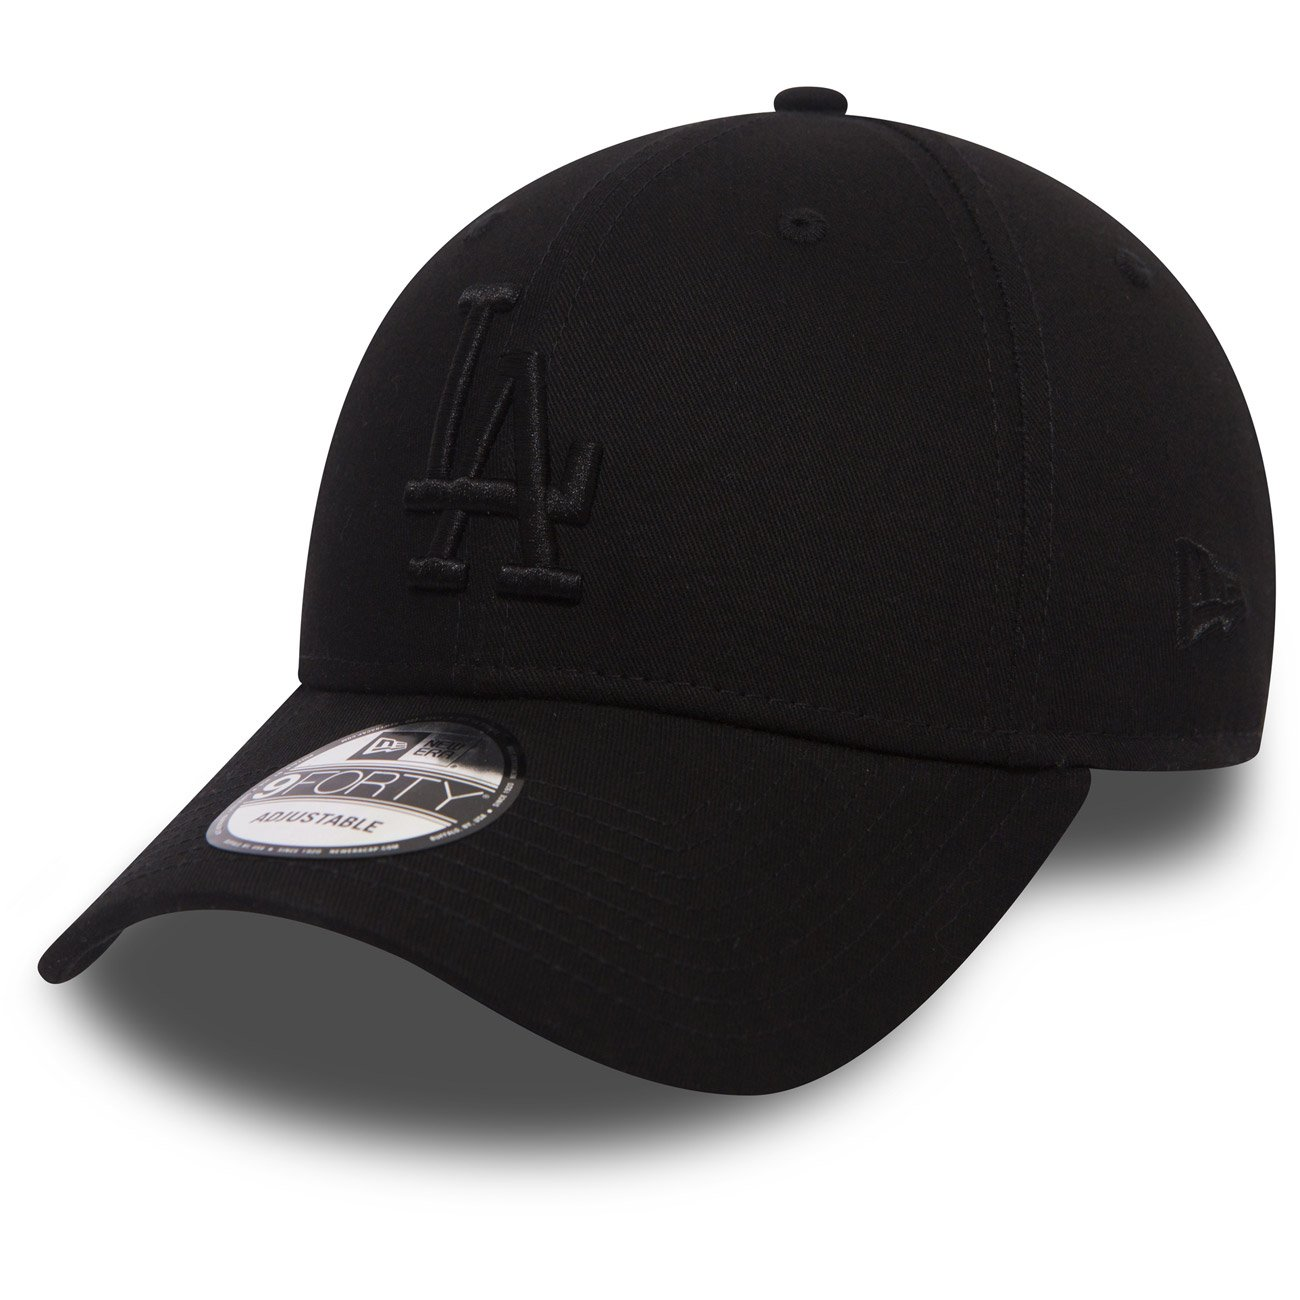 New Era League Essential 940 Los Angeles Dodgers Black/Black Cuffia 9 FORTY Uomo, Nero, Fr: taglia unica (taglia produttore: Osfa) NEXSJ|#New Era 80524685